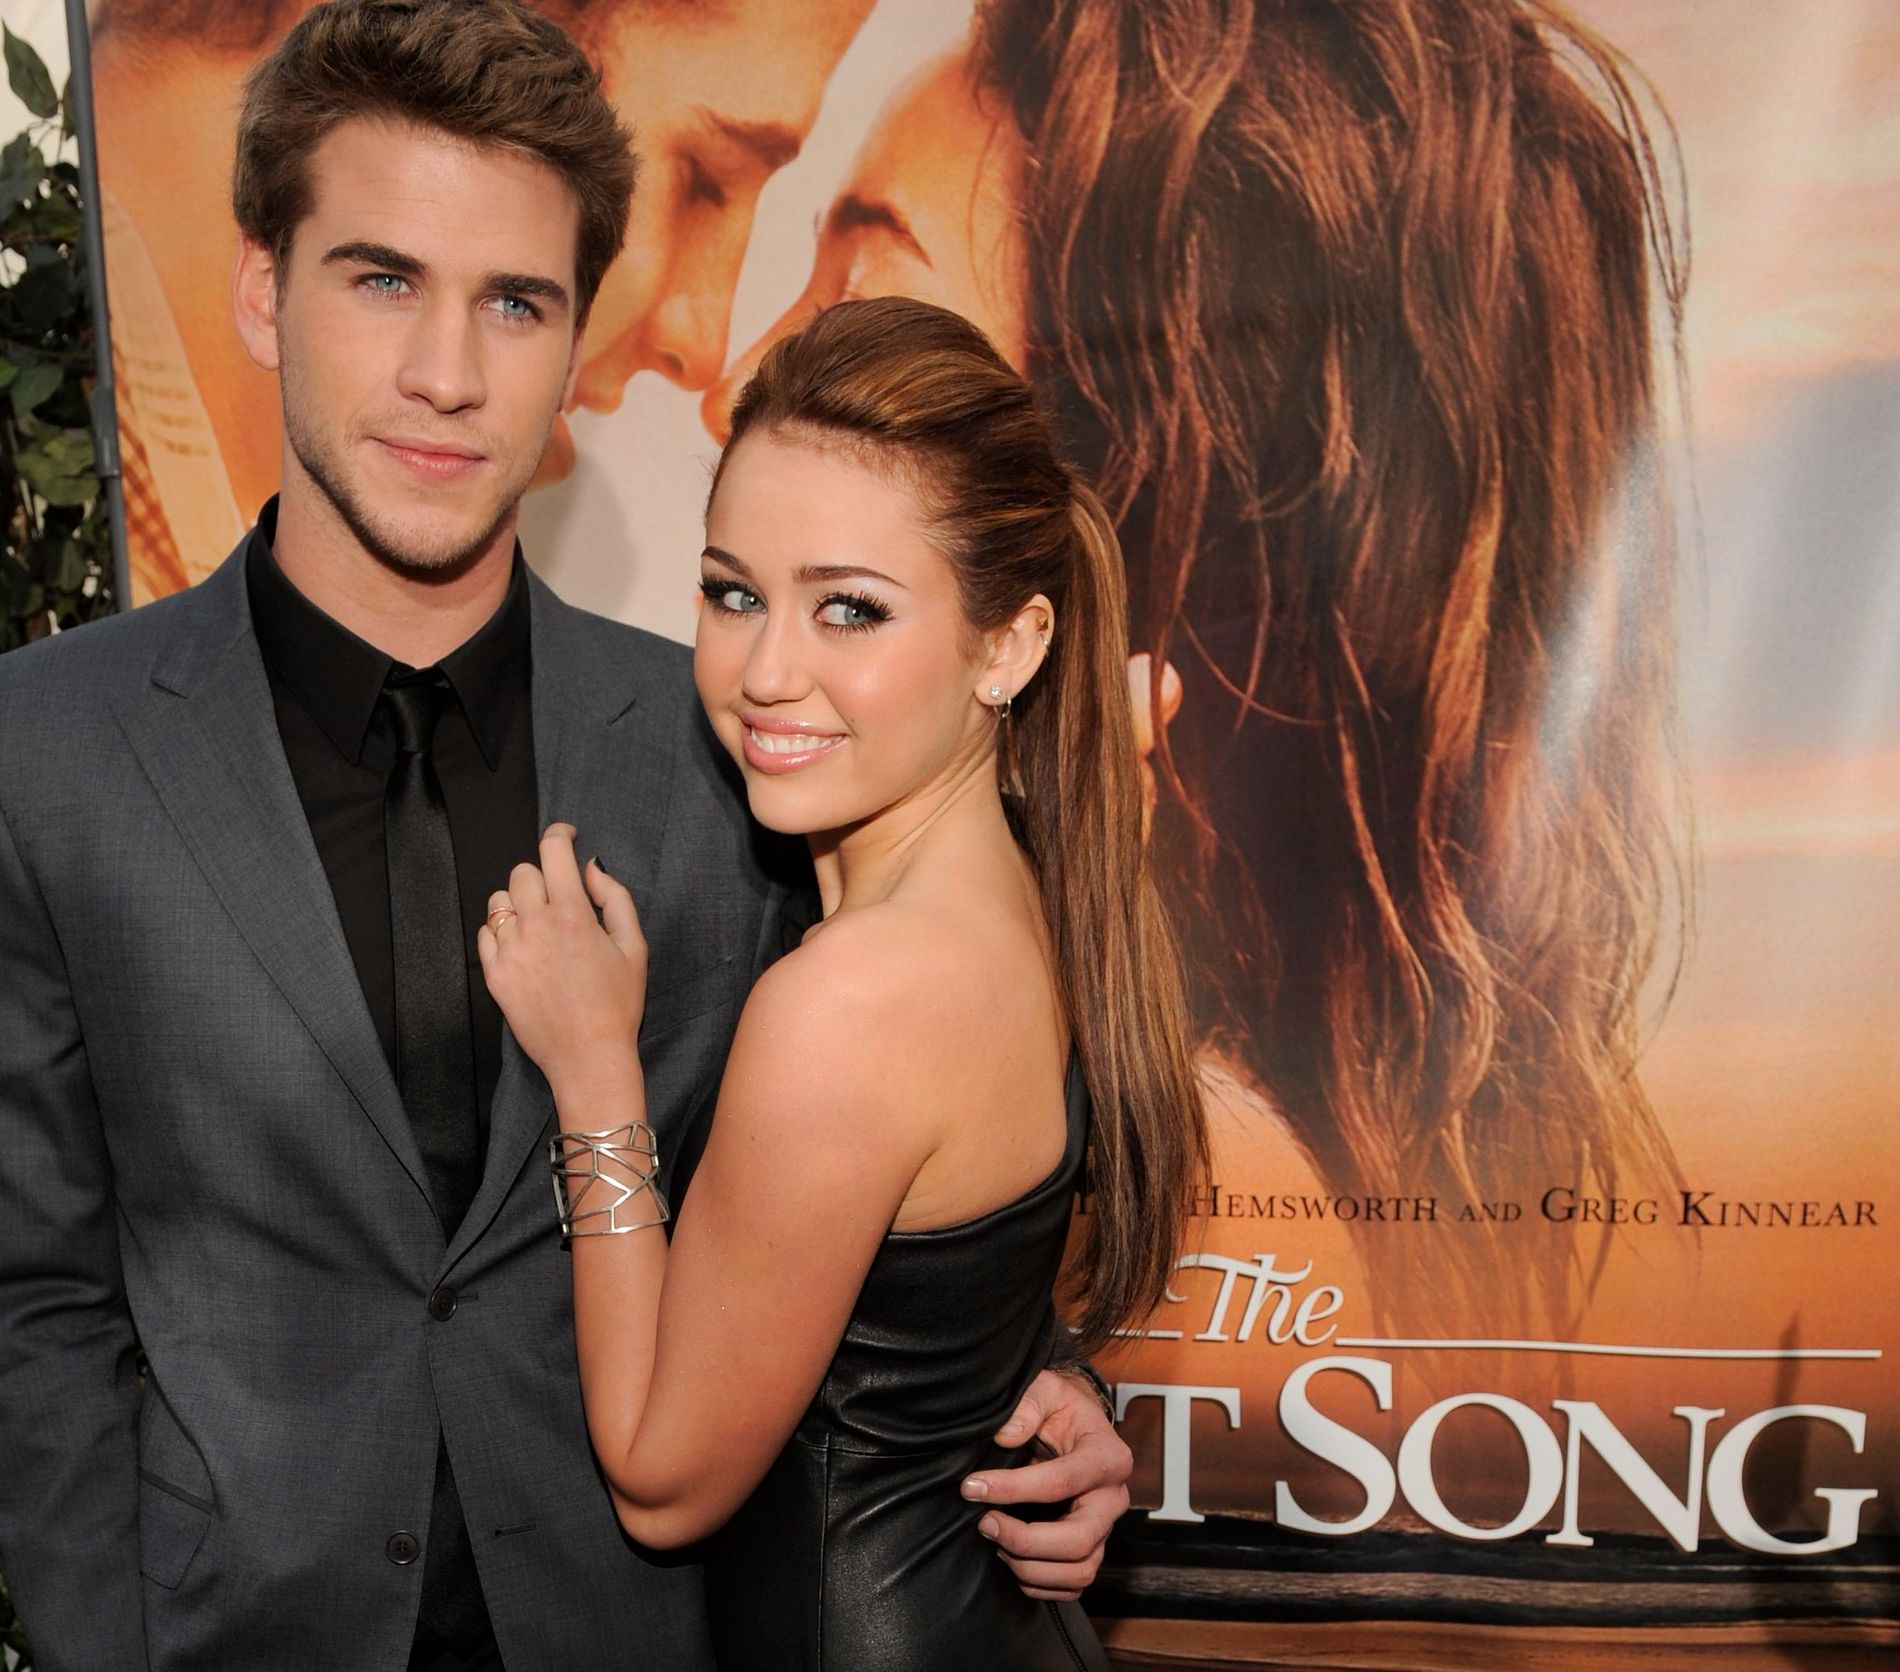 2010: Liam Hemsworth og Miley Cyrus på filmpremiere.